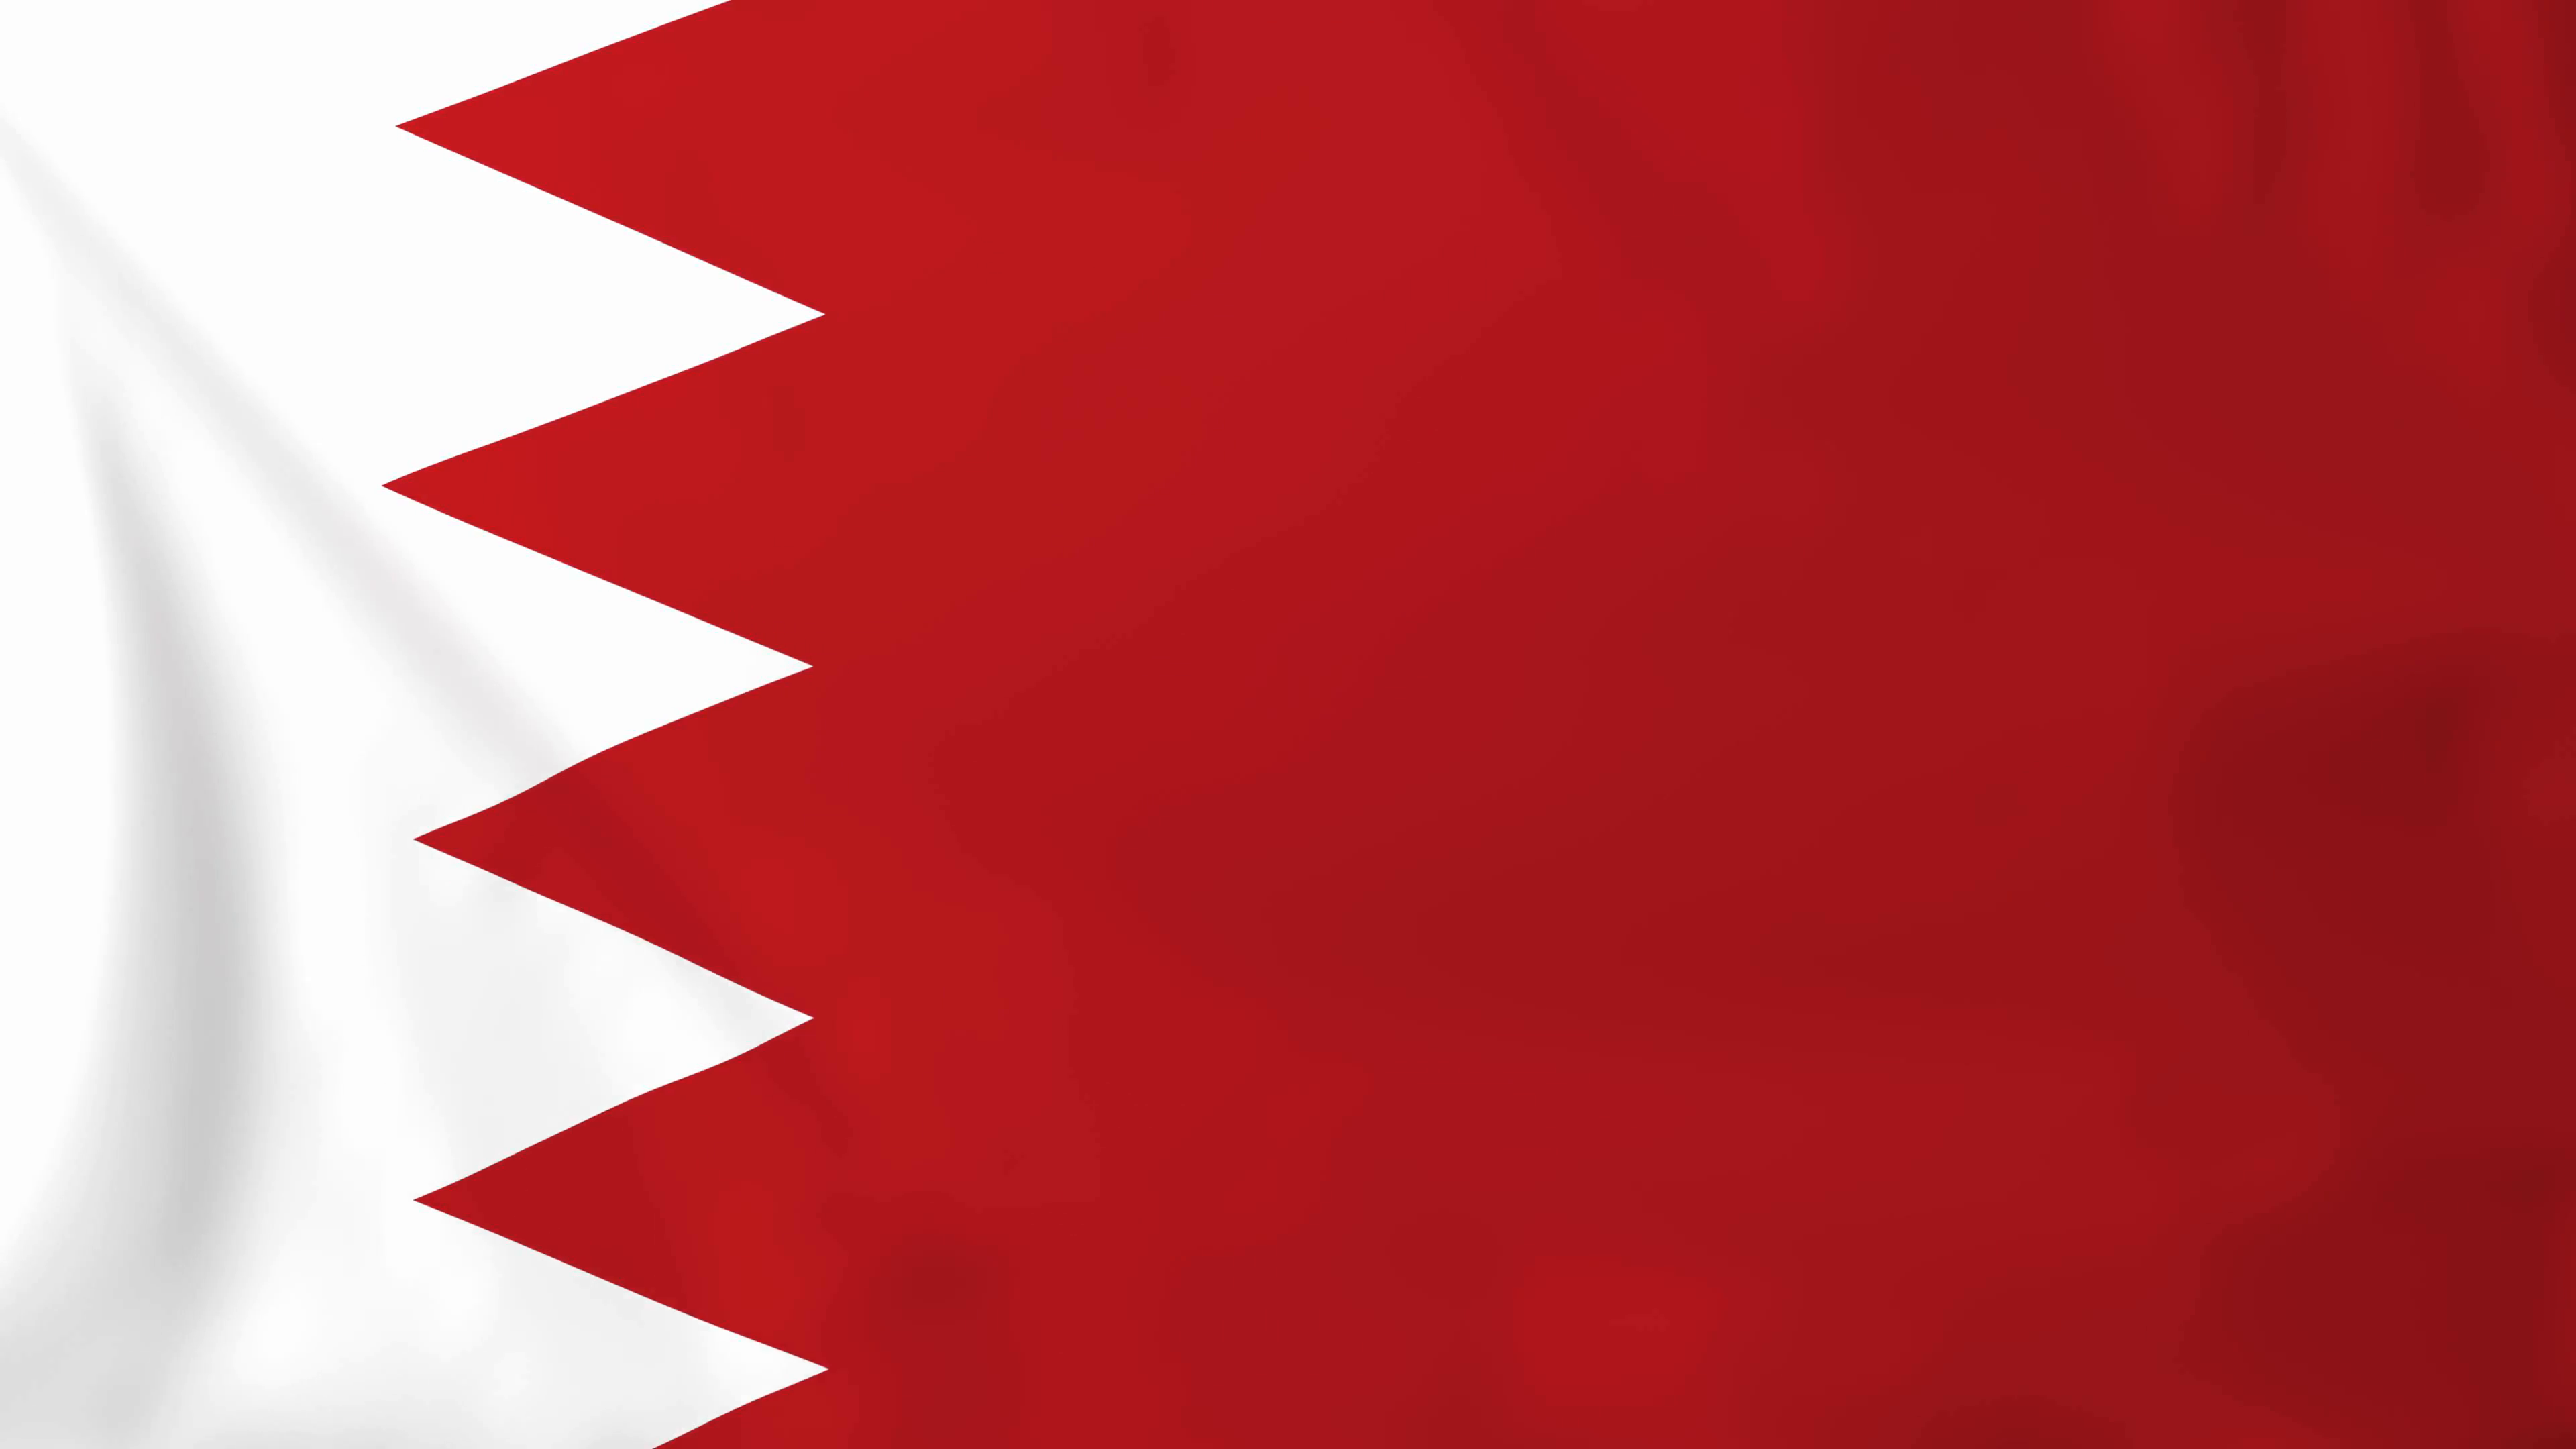 flag-of-bahrain-slow-motion-waving-rendered-using-official-design-and-colors_n3c9syqpe__f0000